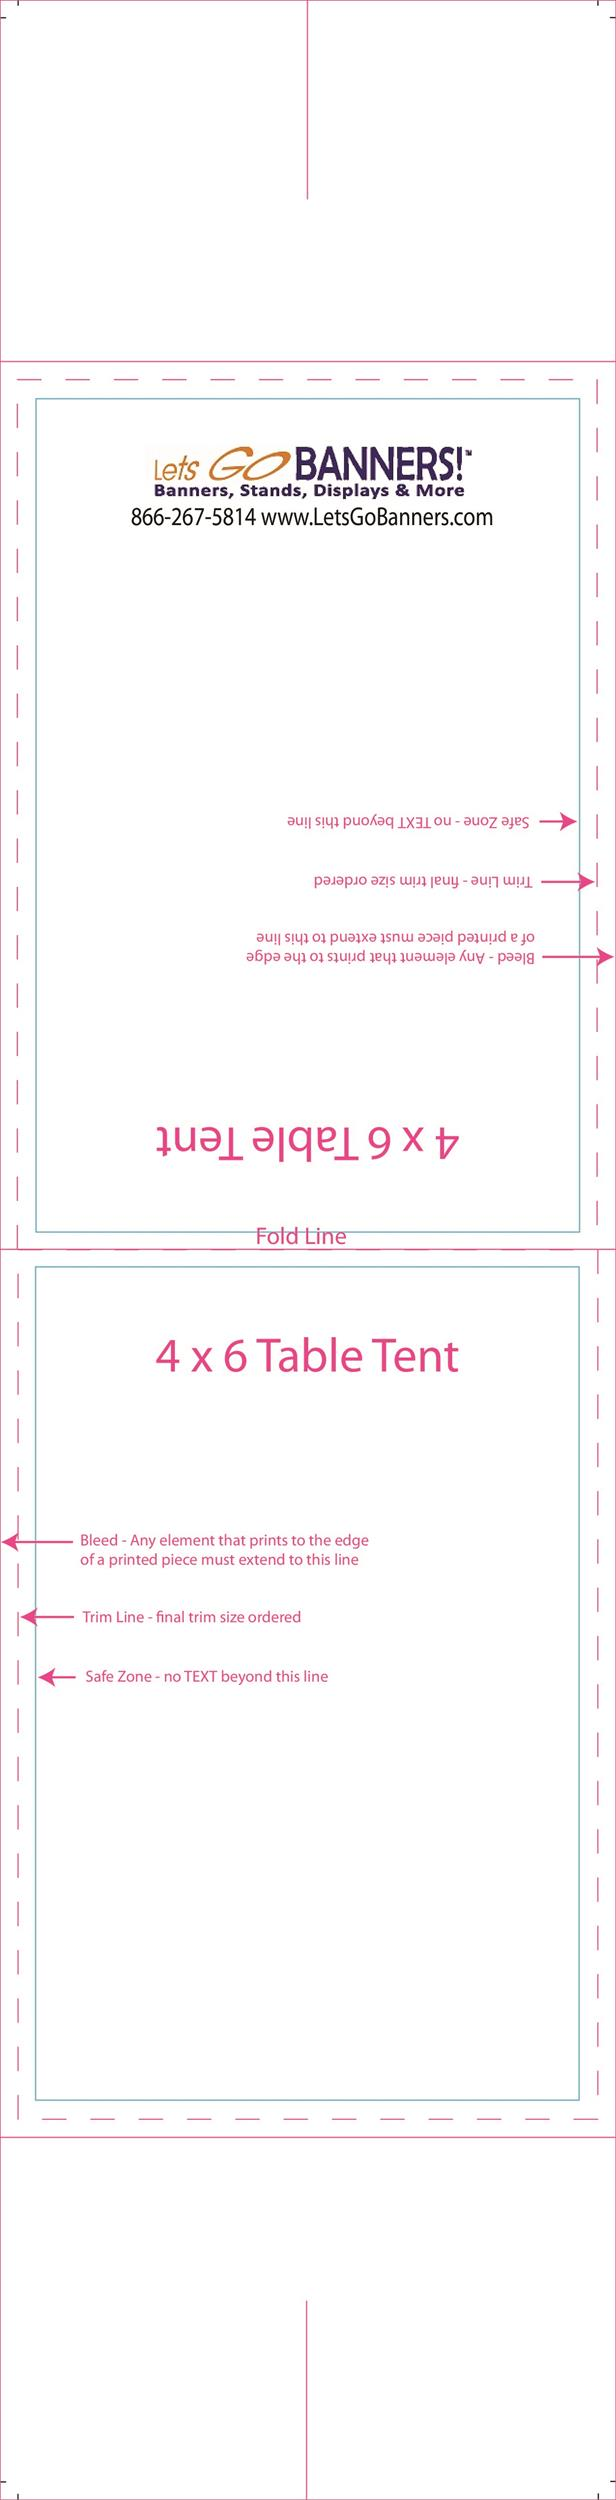 Free table tent template 11